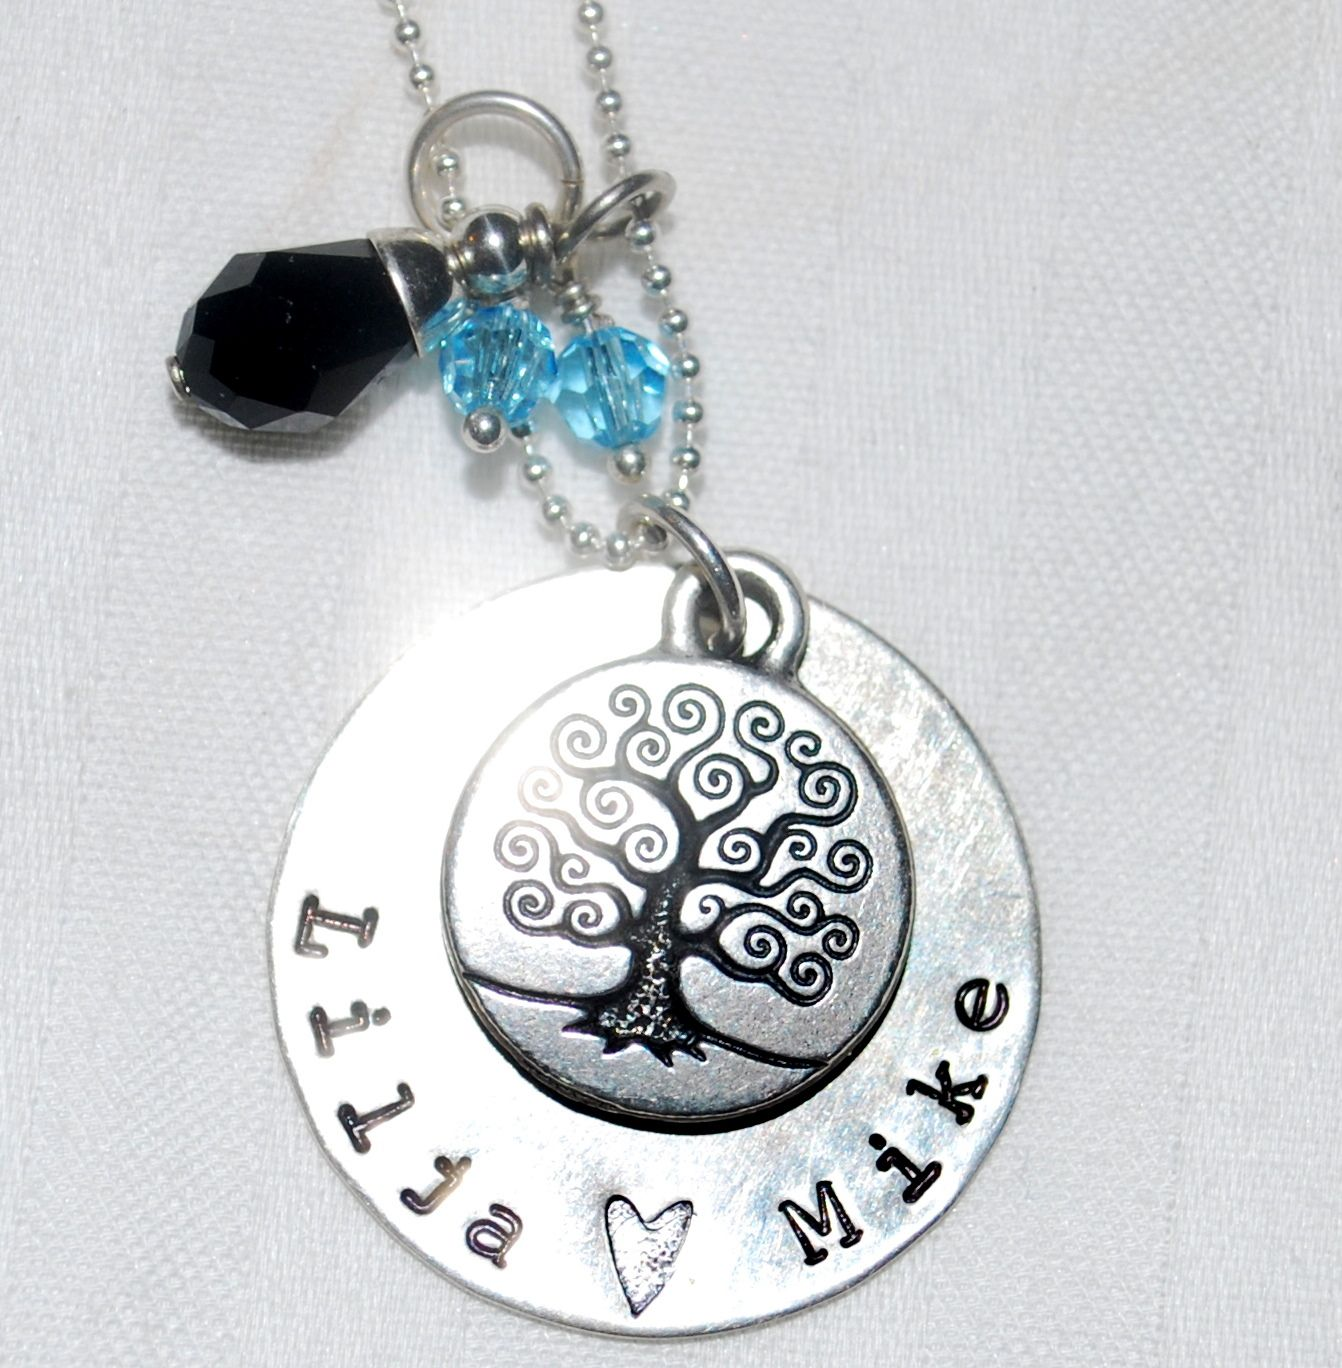 www.etsy.com/shop/patricia8anderson  Under the tree of life is our anniversary date. We were married in March so I did two aquamarine stones and the black stone is for being married on Friday the 13th.   LOVE THIS!!!